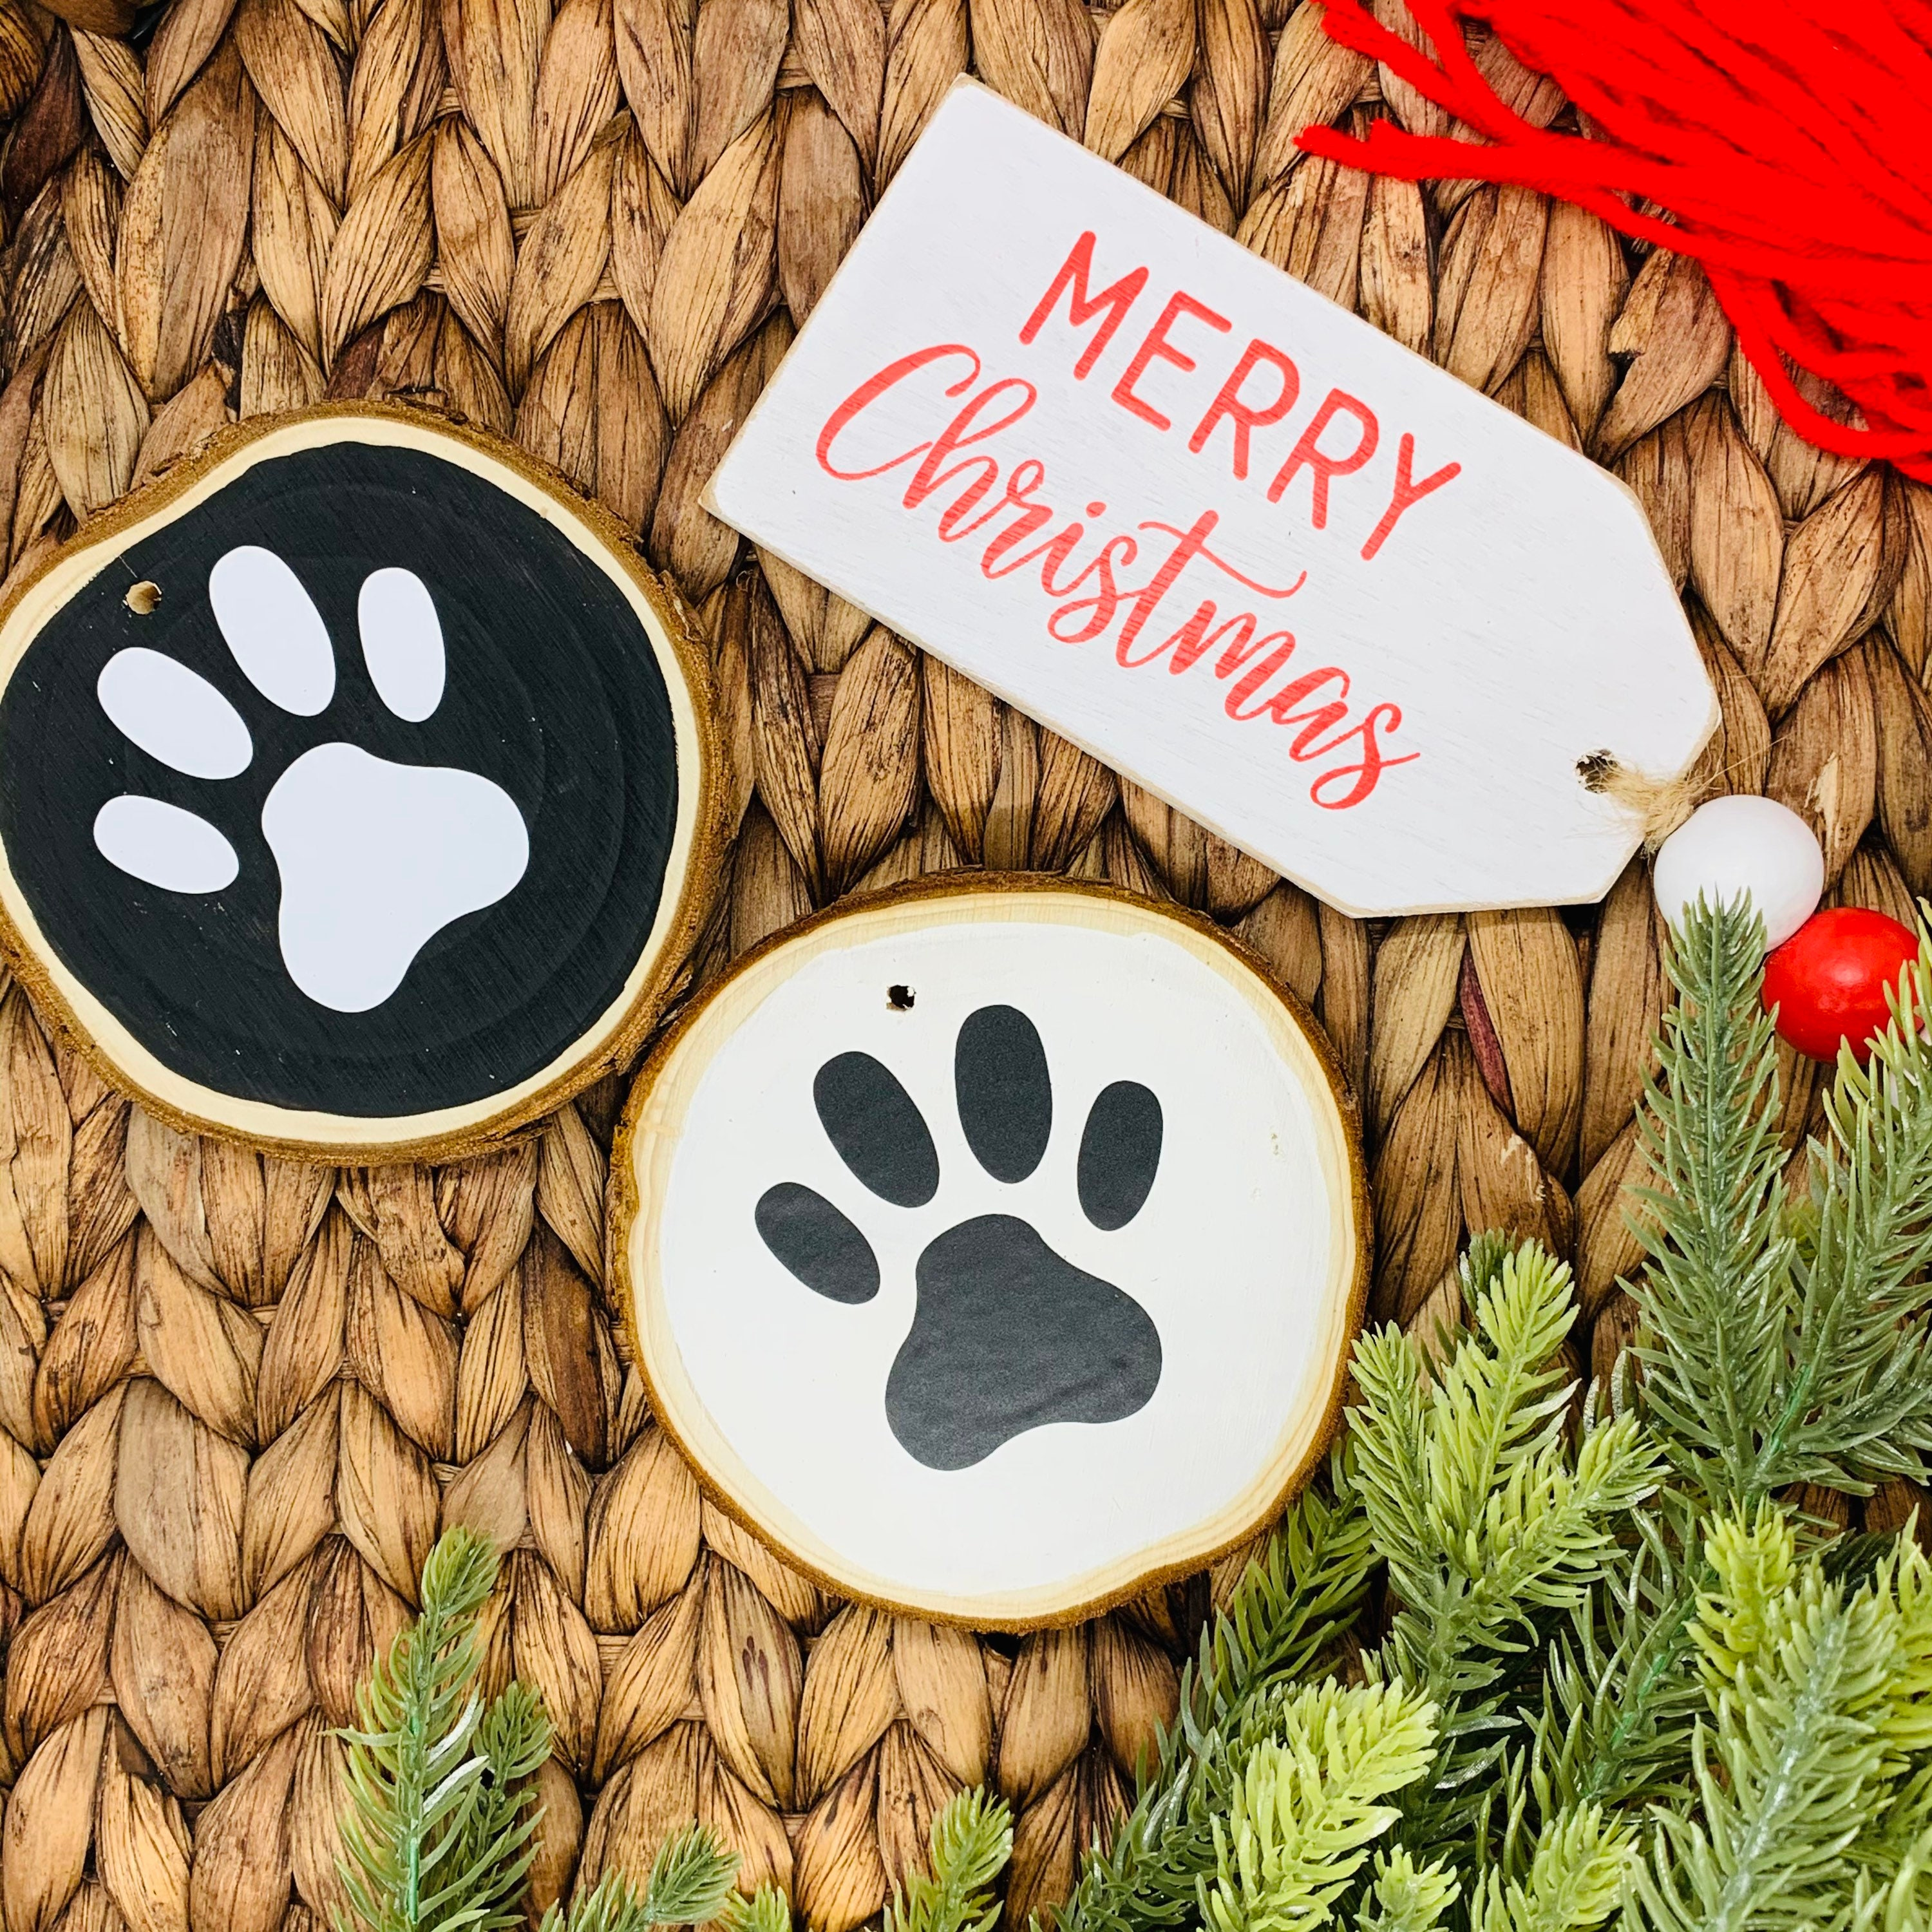 Christmas Ornament Set Of 2 Personalized Wood Slice Ornaments Farmhouse Christmas Black And White Rustic Christmas Decor